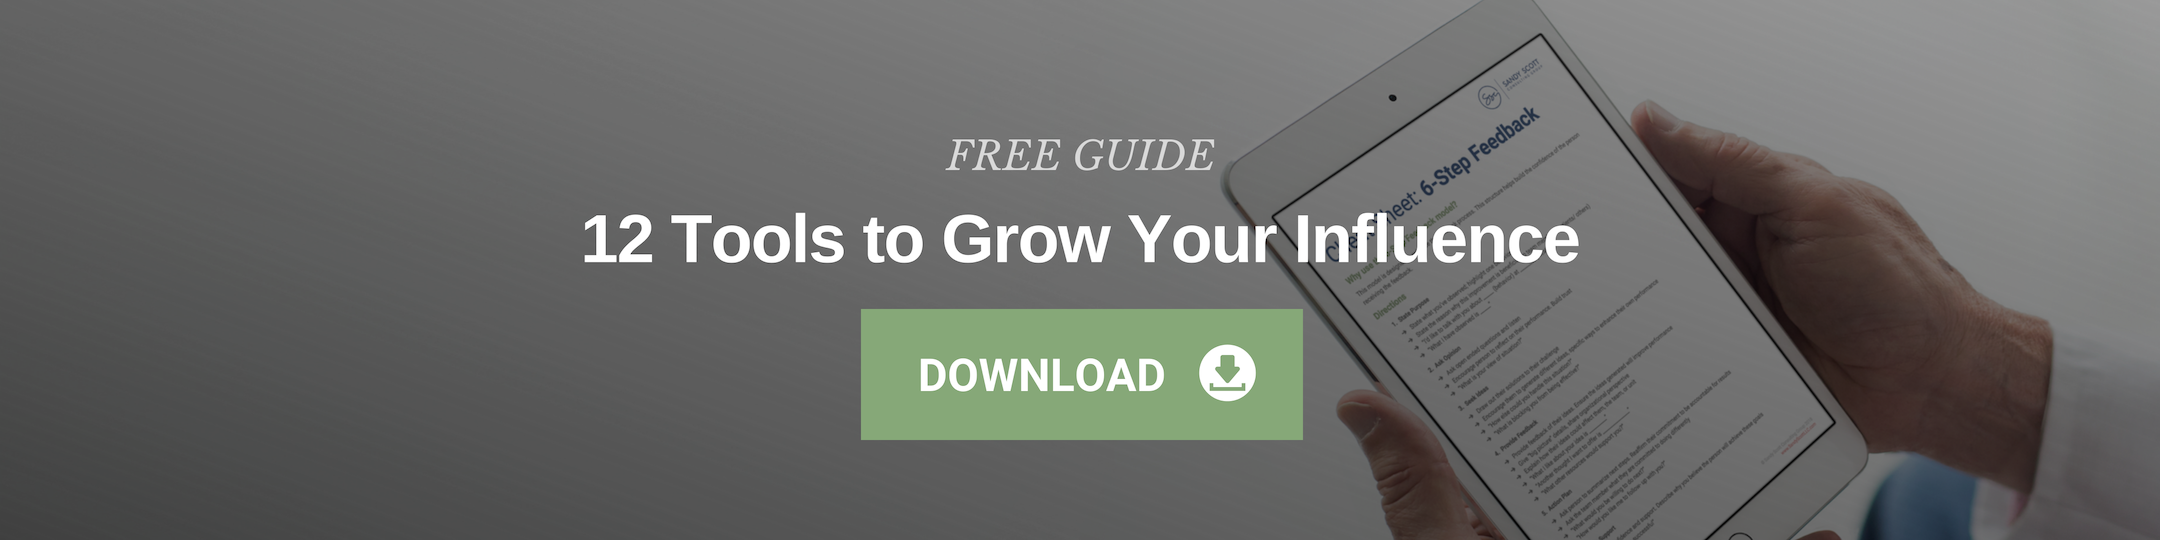 FREE GUIDE (20).png